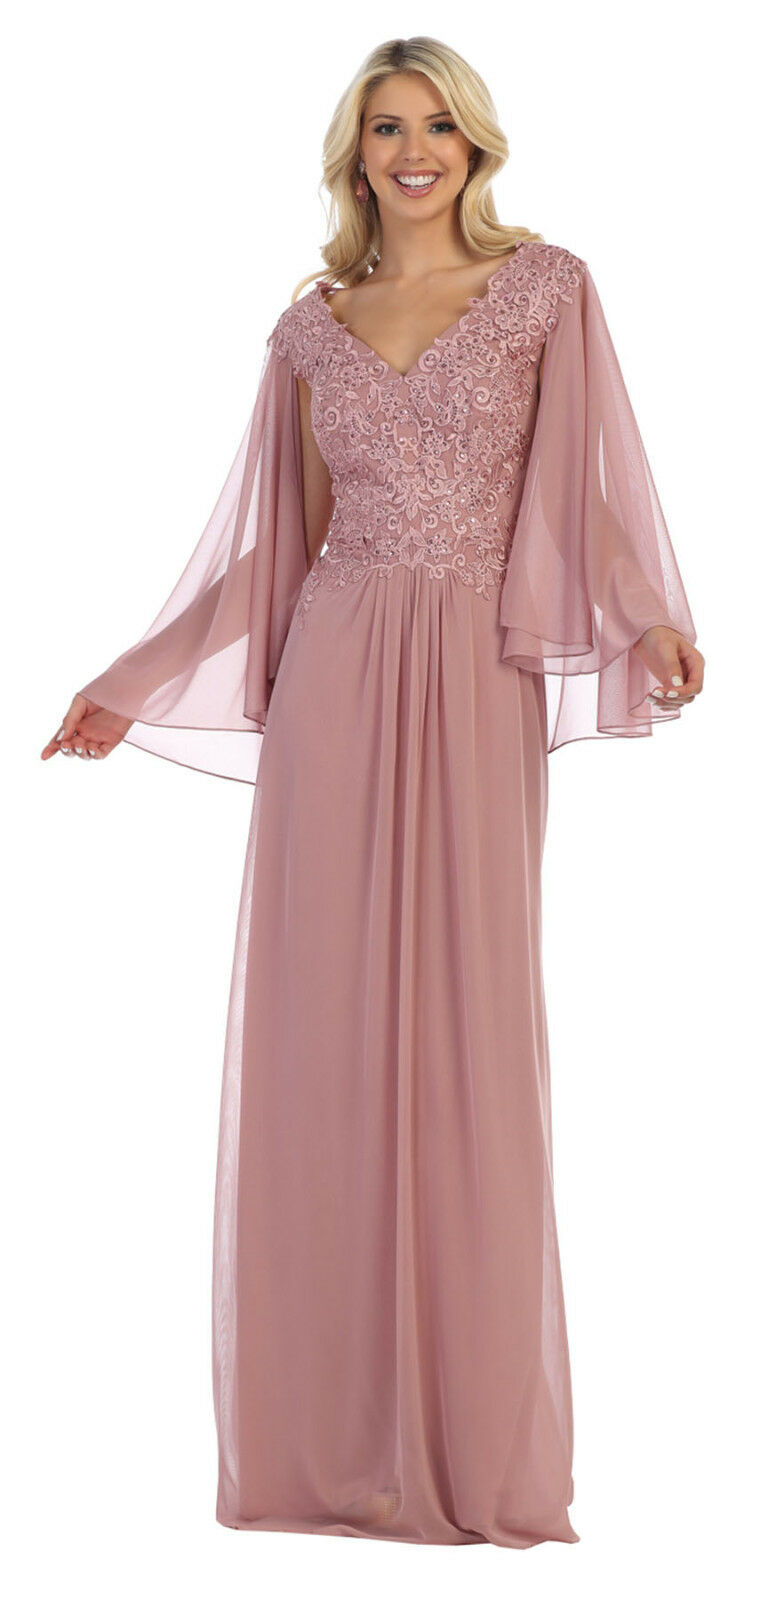 SPECIAL OCCASION MOTHER OF THE BRIDE LACE MESH EVENING CAPE DRESS & PLUS SIZE